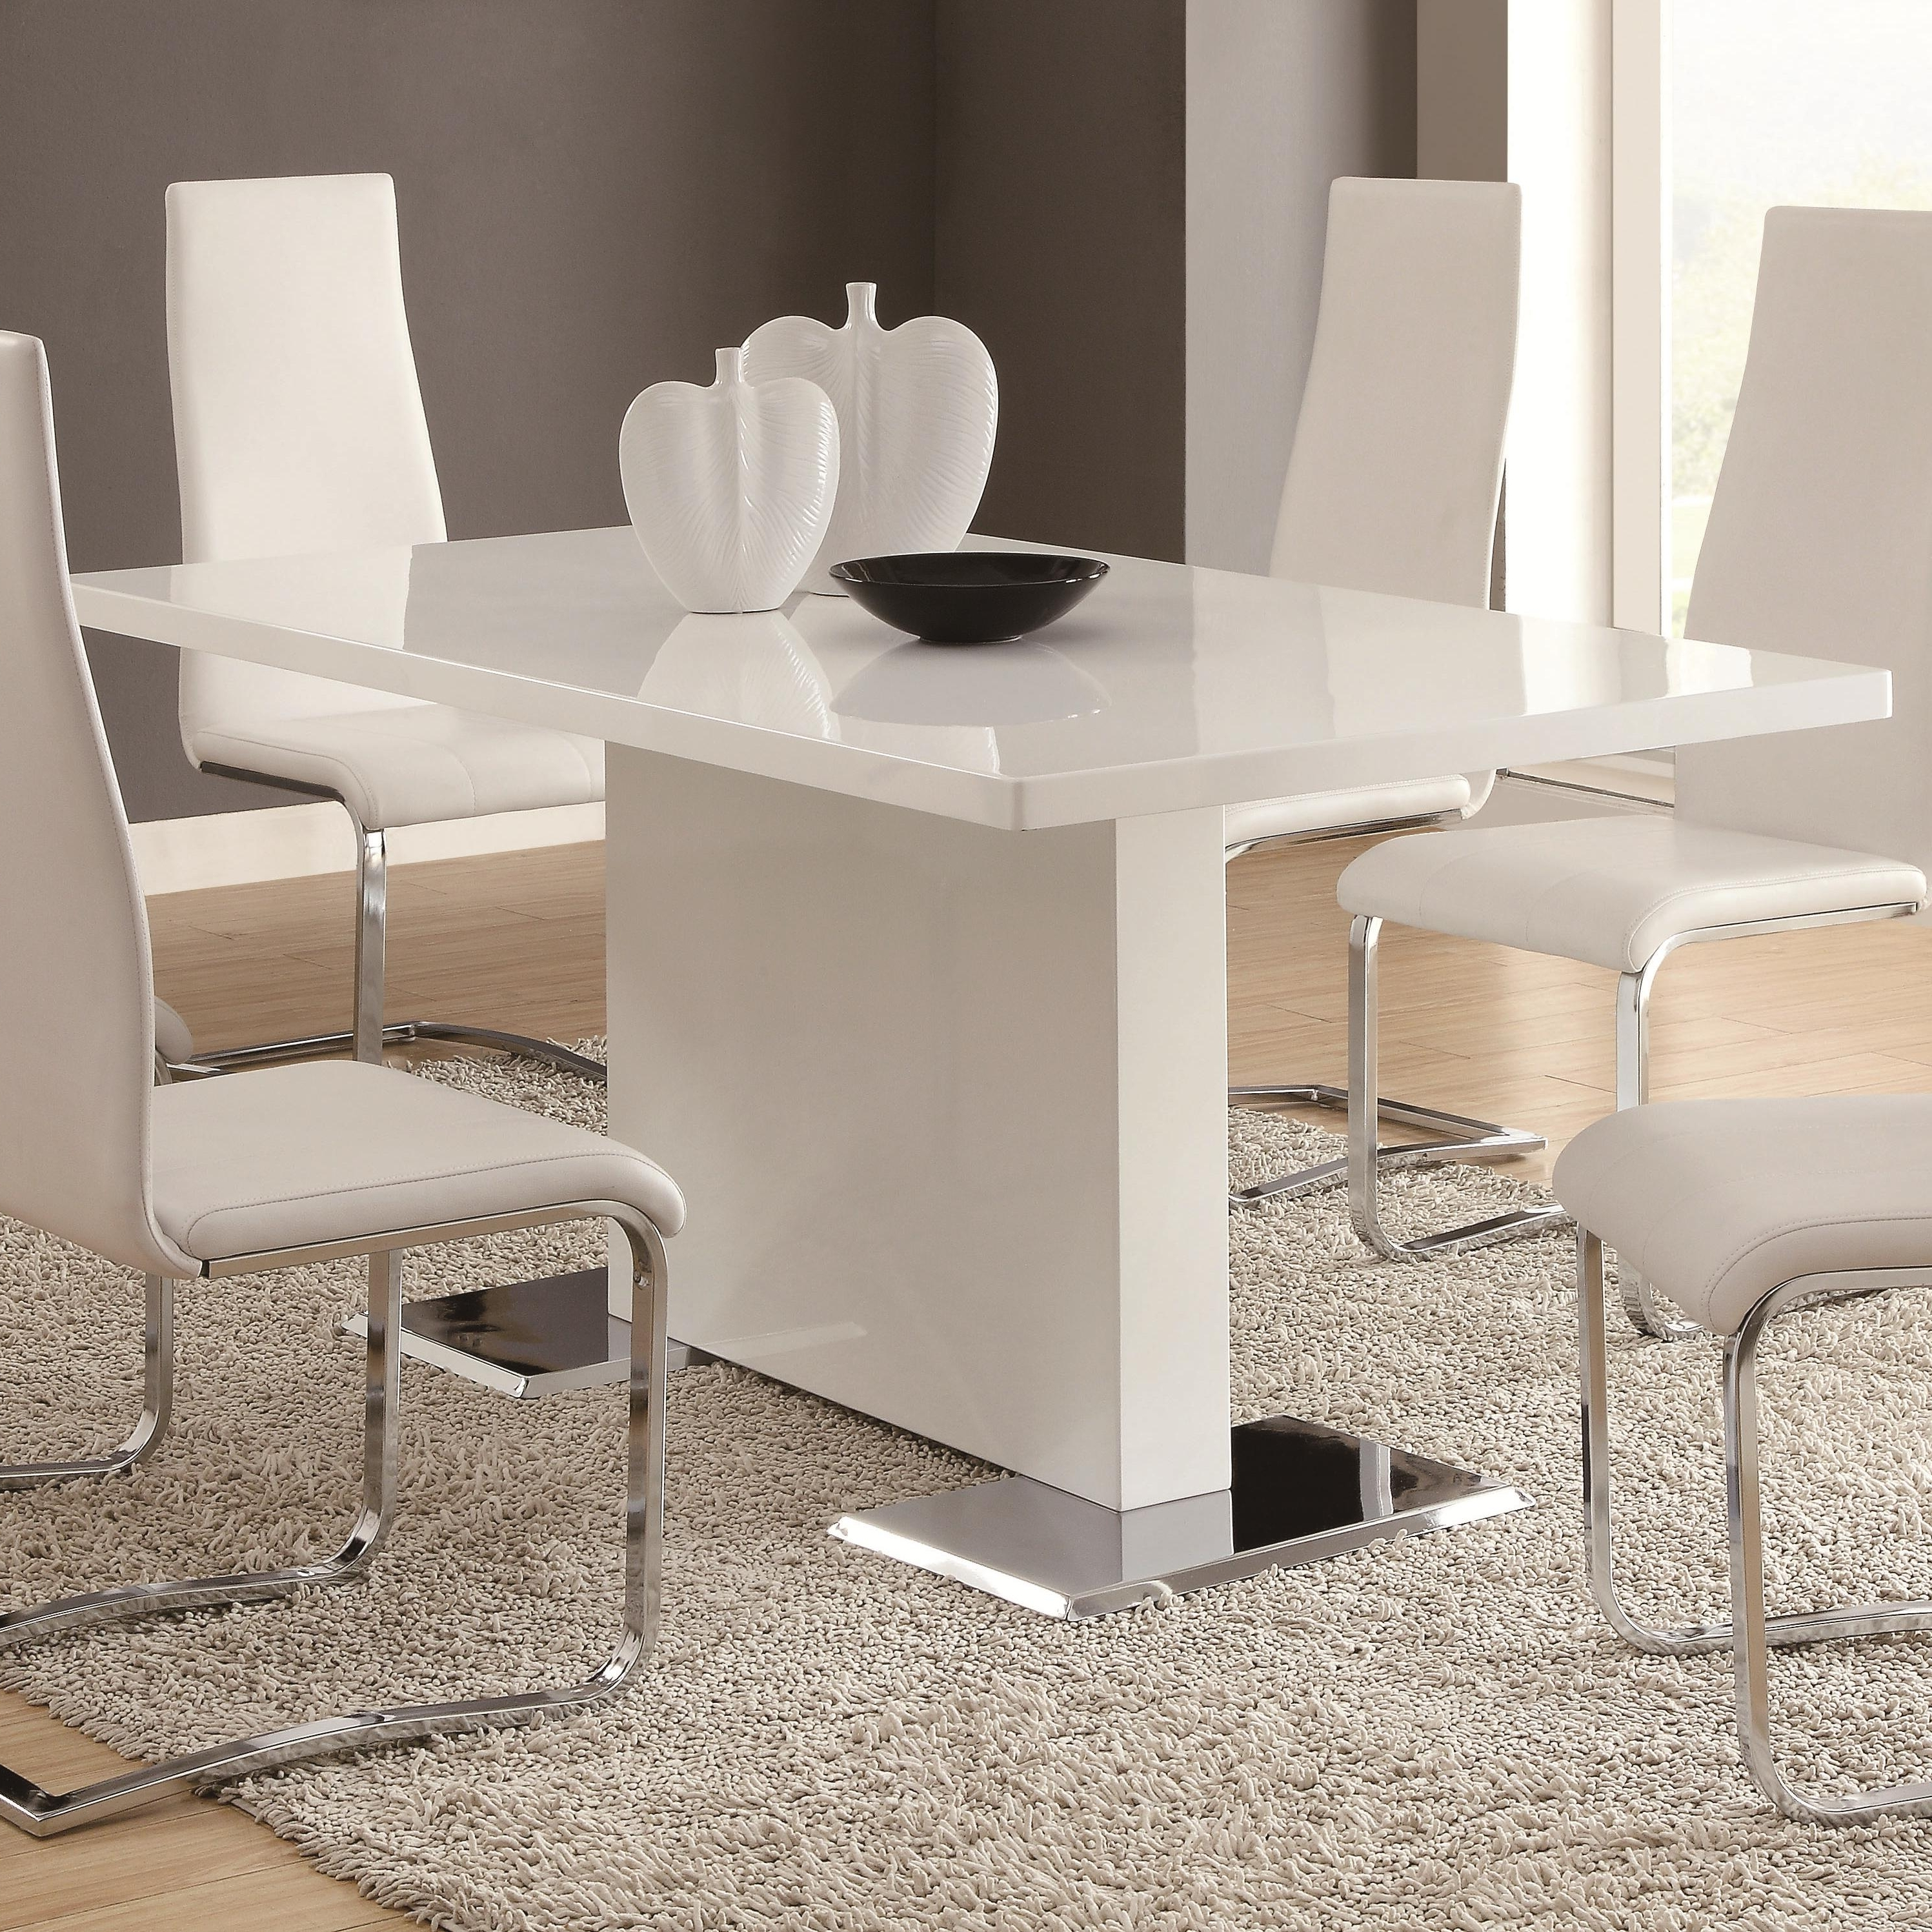 The Classy Home Pertaining To White Dining Tables (View 5 of 25)